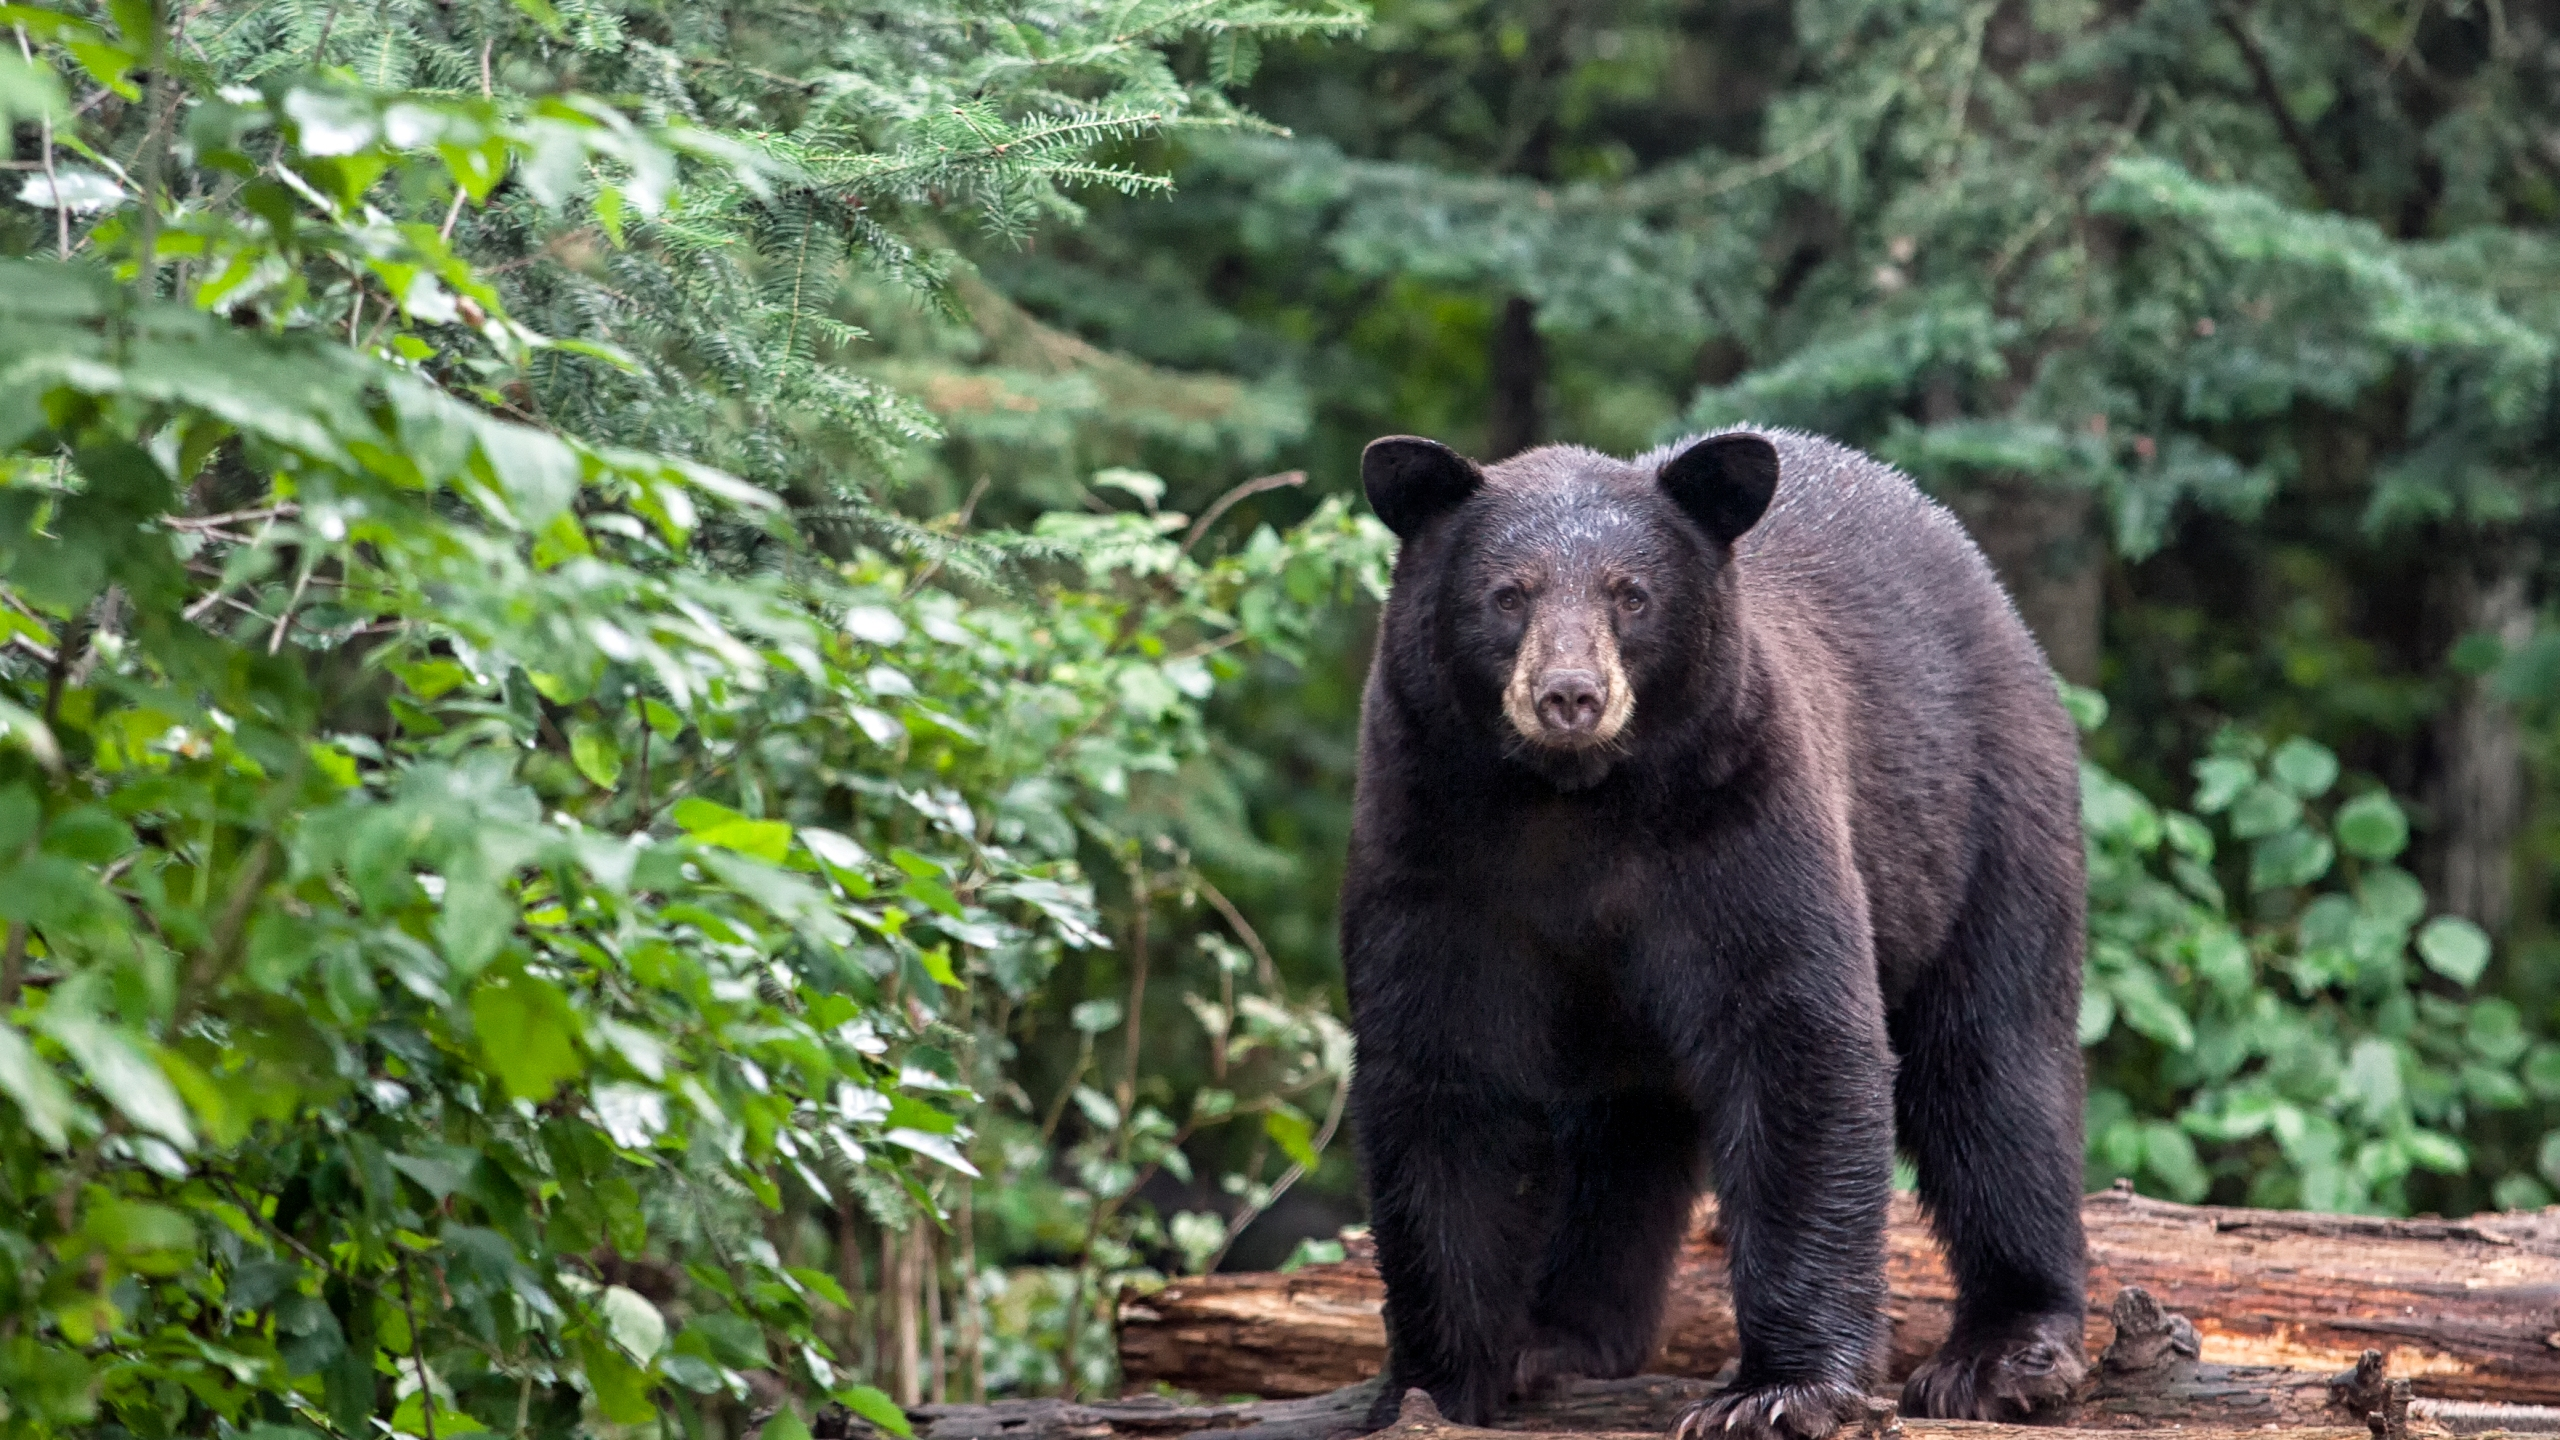 File photo of a bear. (Credit: Getty Images)